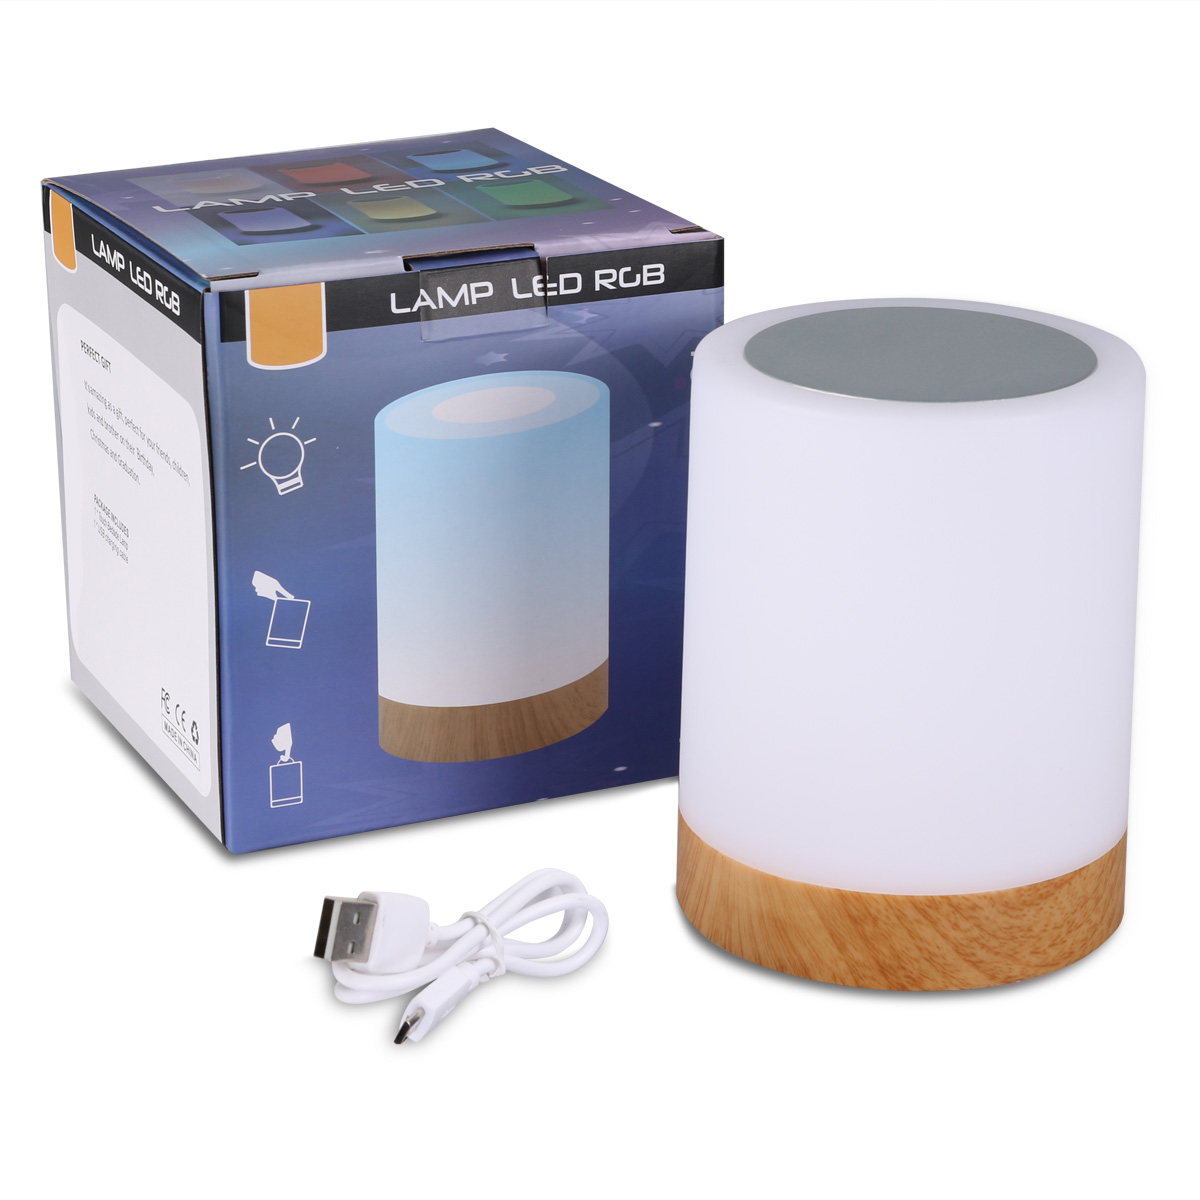 USB Rechargeable LED Night Light for Kids LED Lamp with Sensitive Touch Control Baby Nursery Lamp